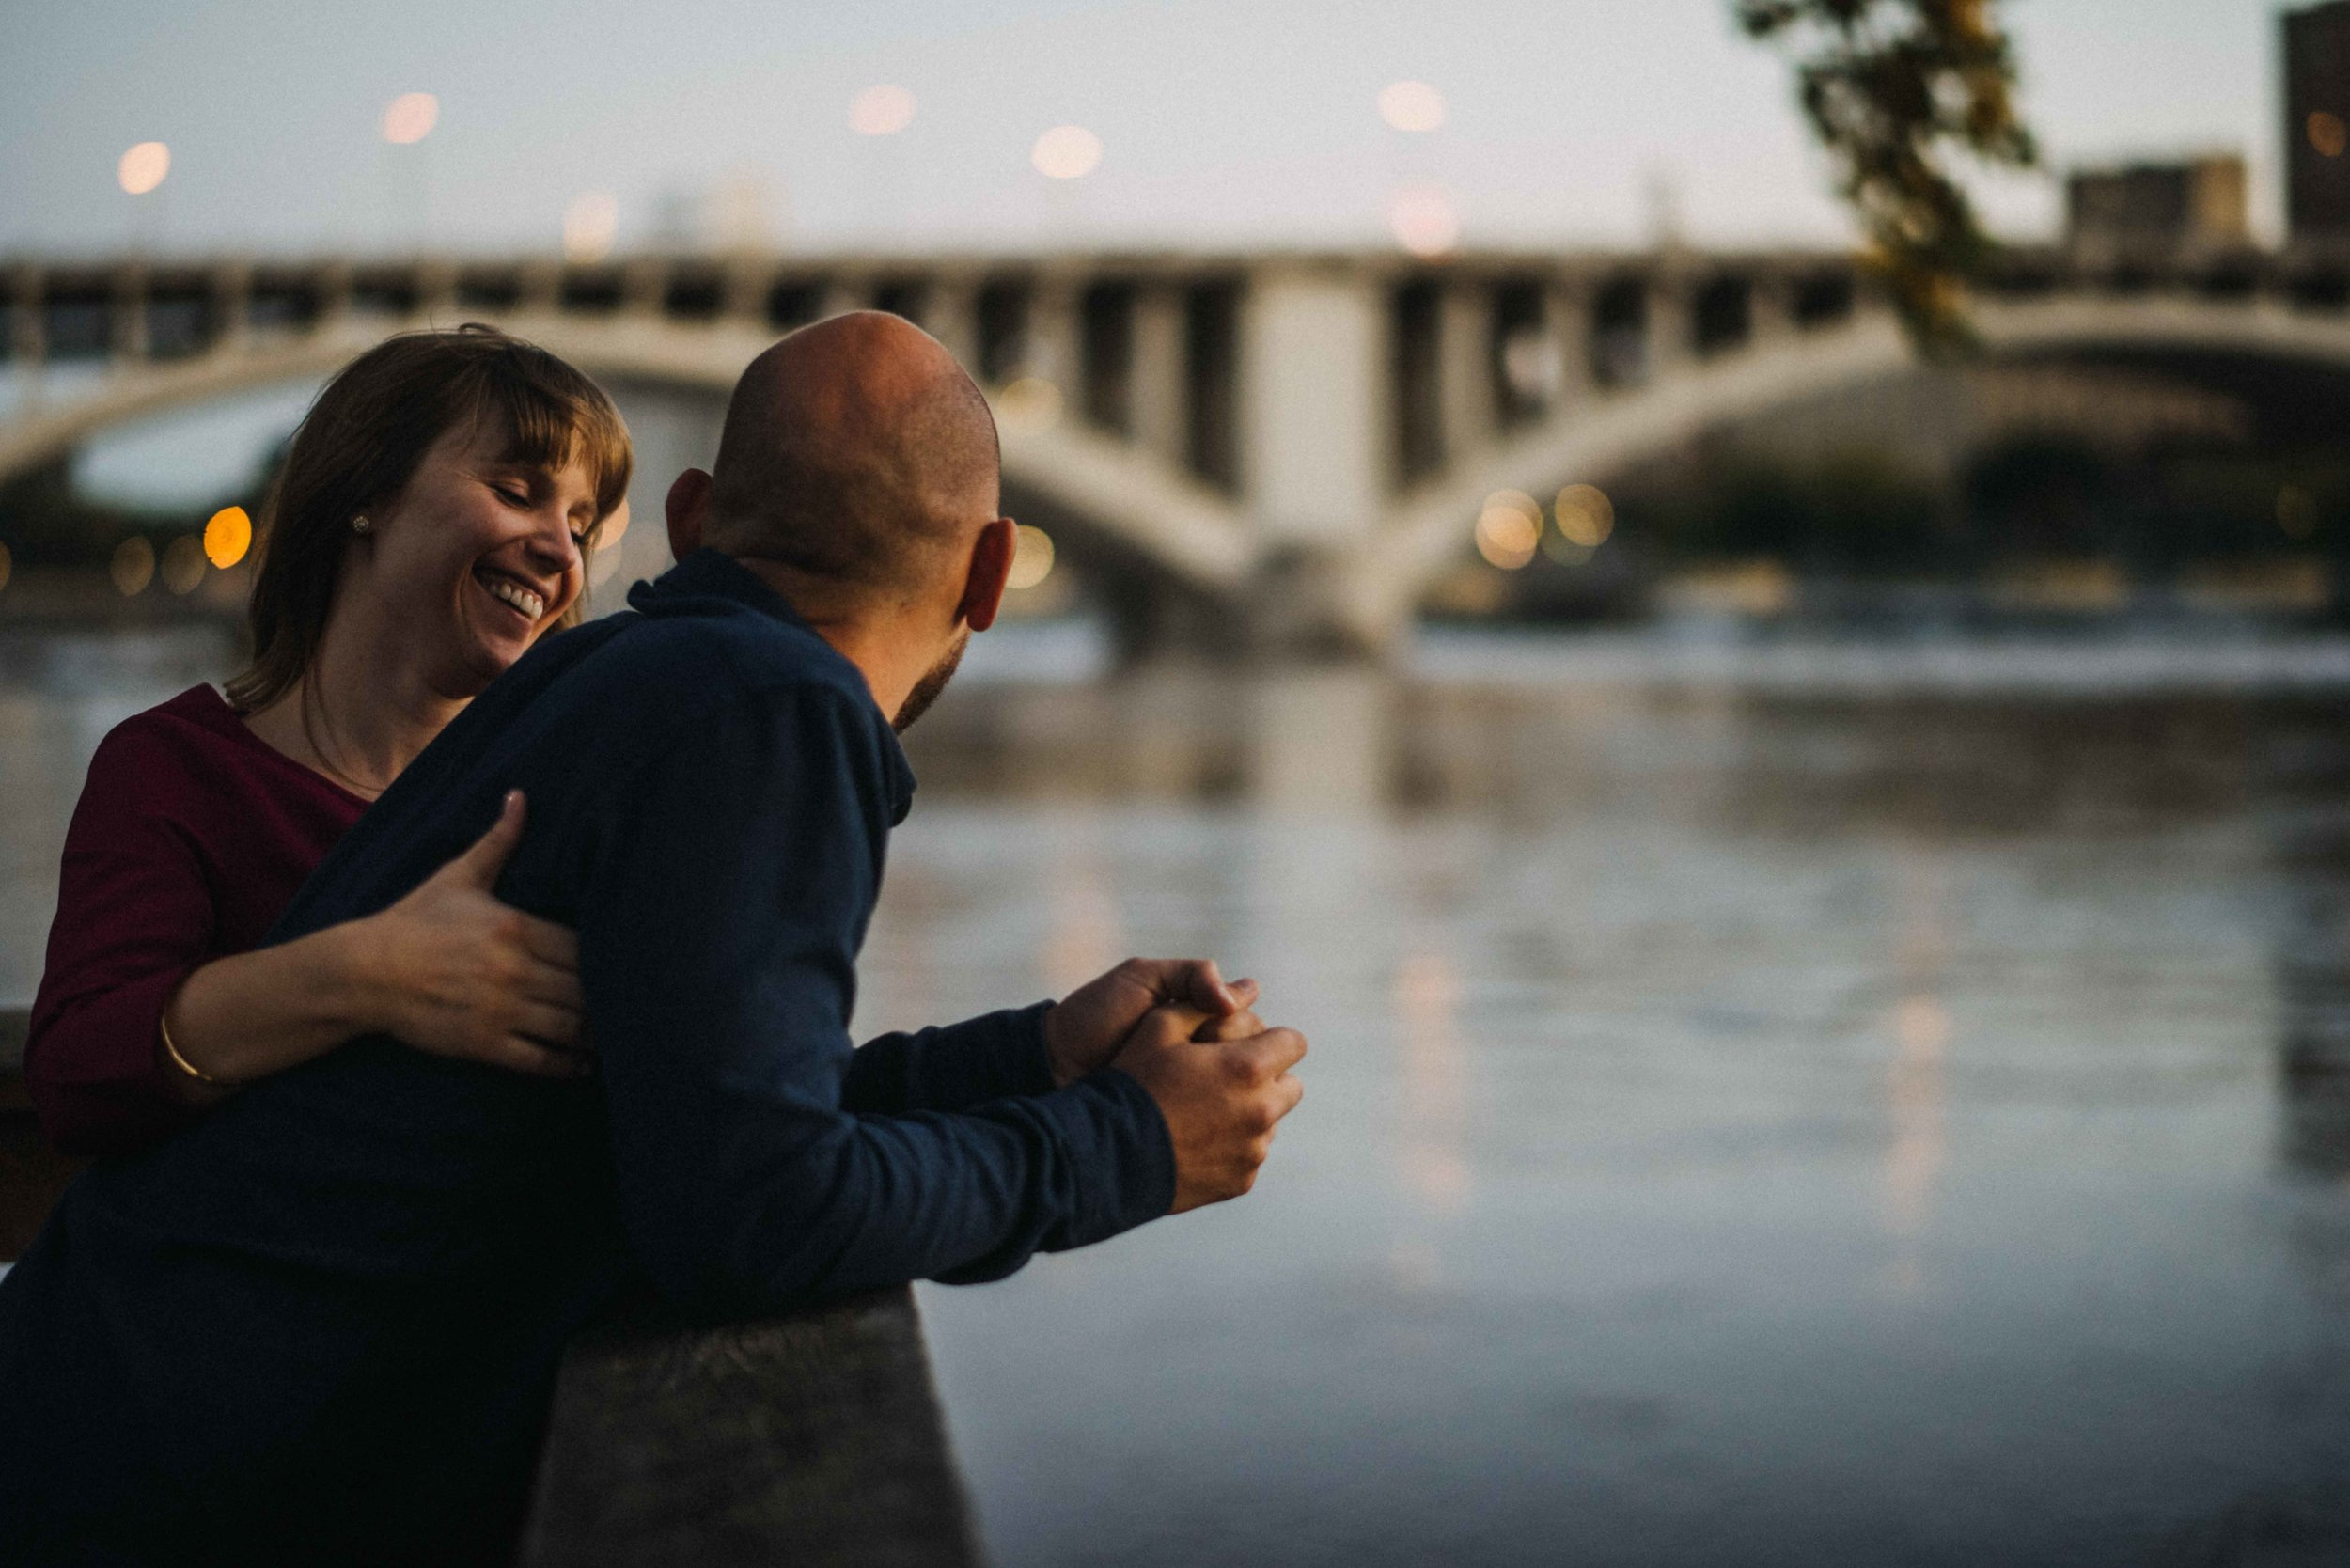 modist_brewing_minneapolis_minnesota_wedding_photography_engagement_session (29 of 32).JPG